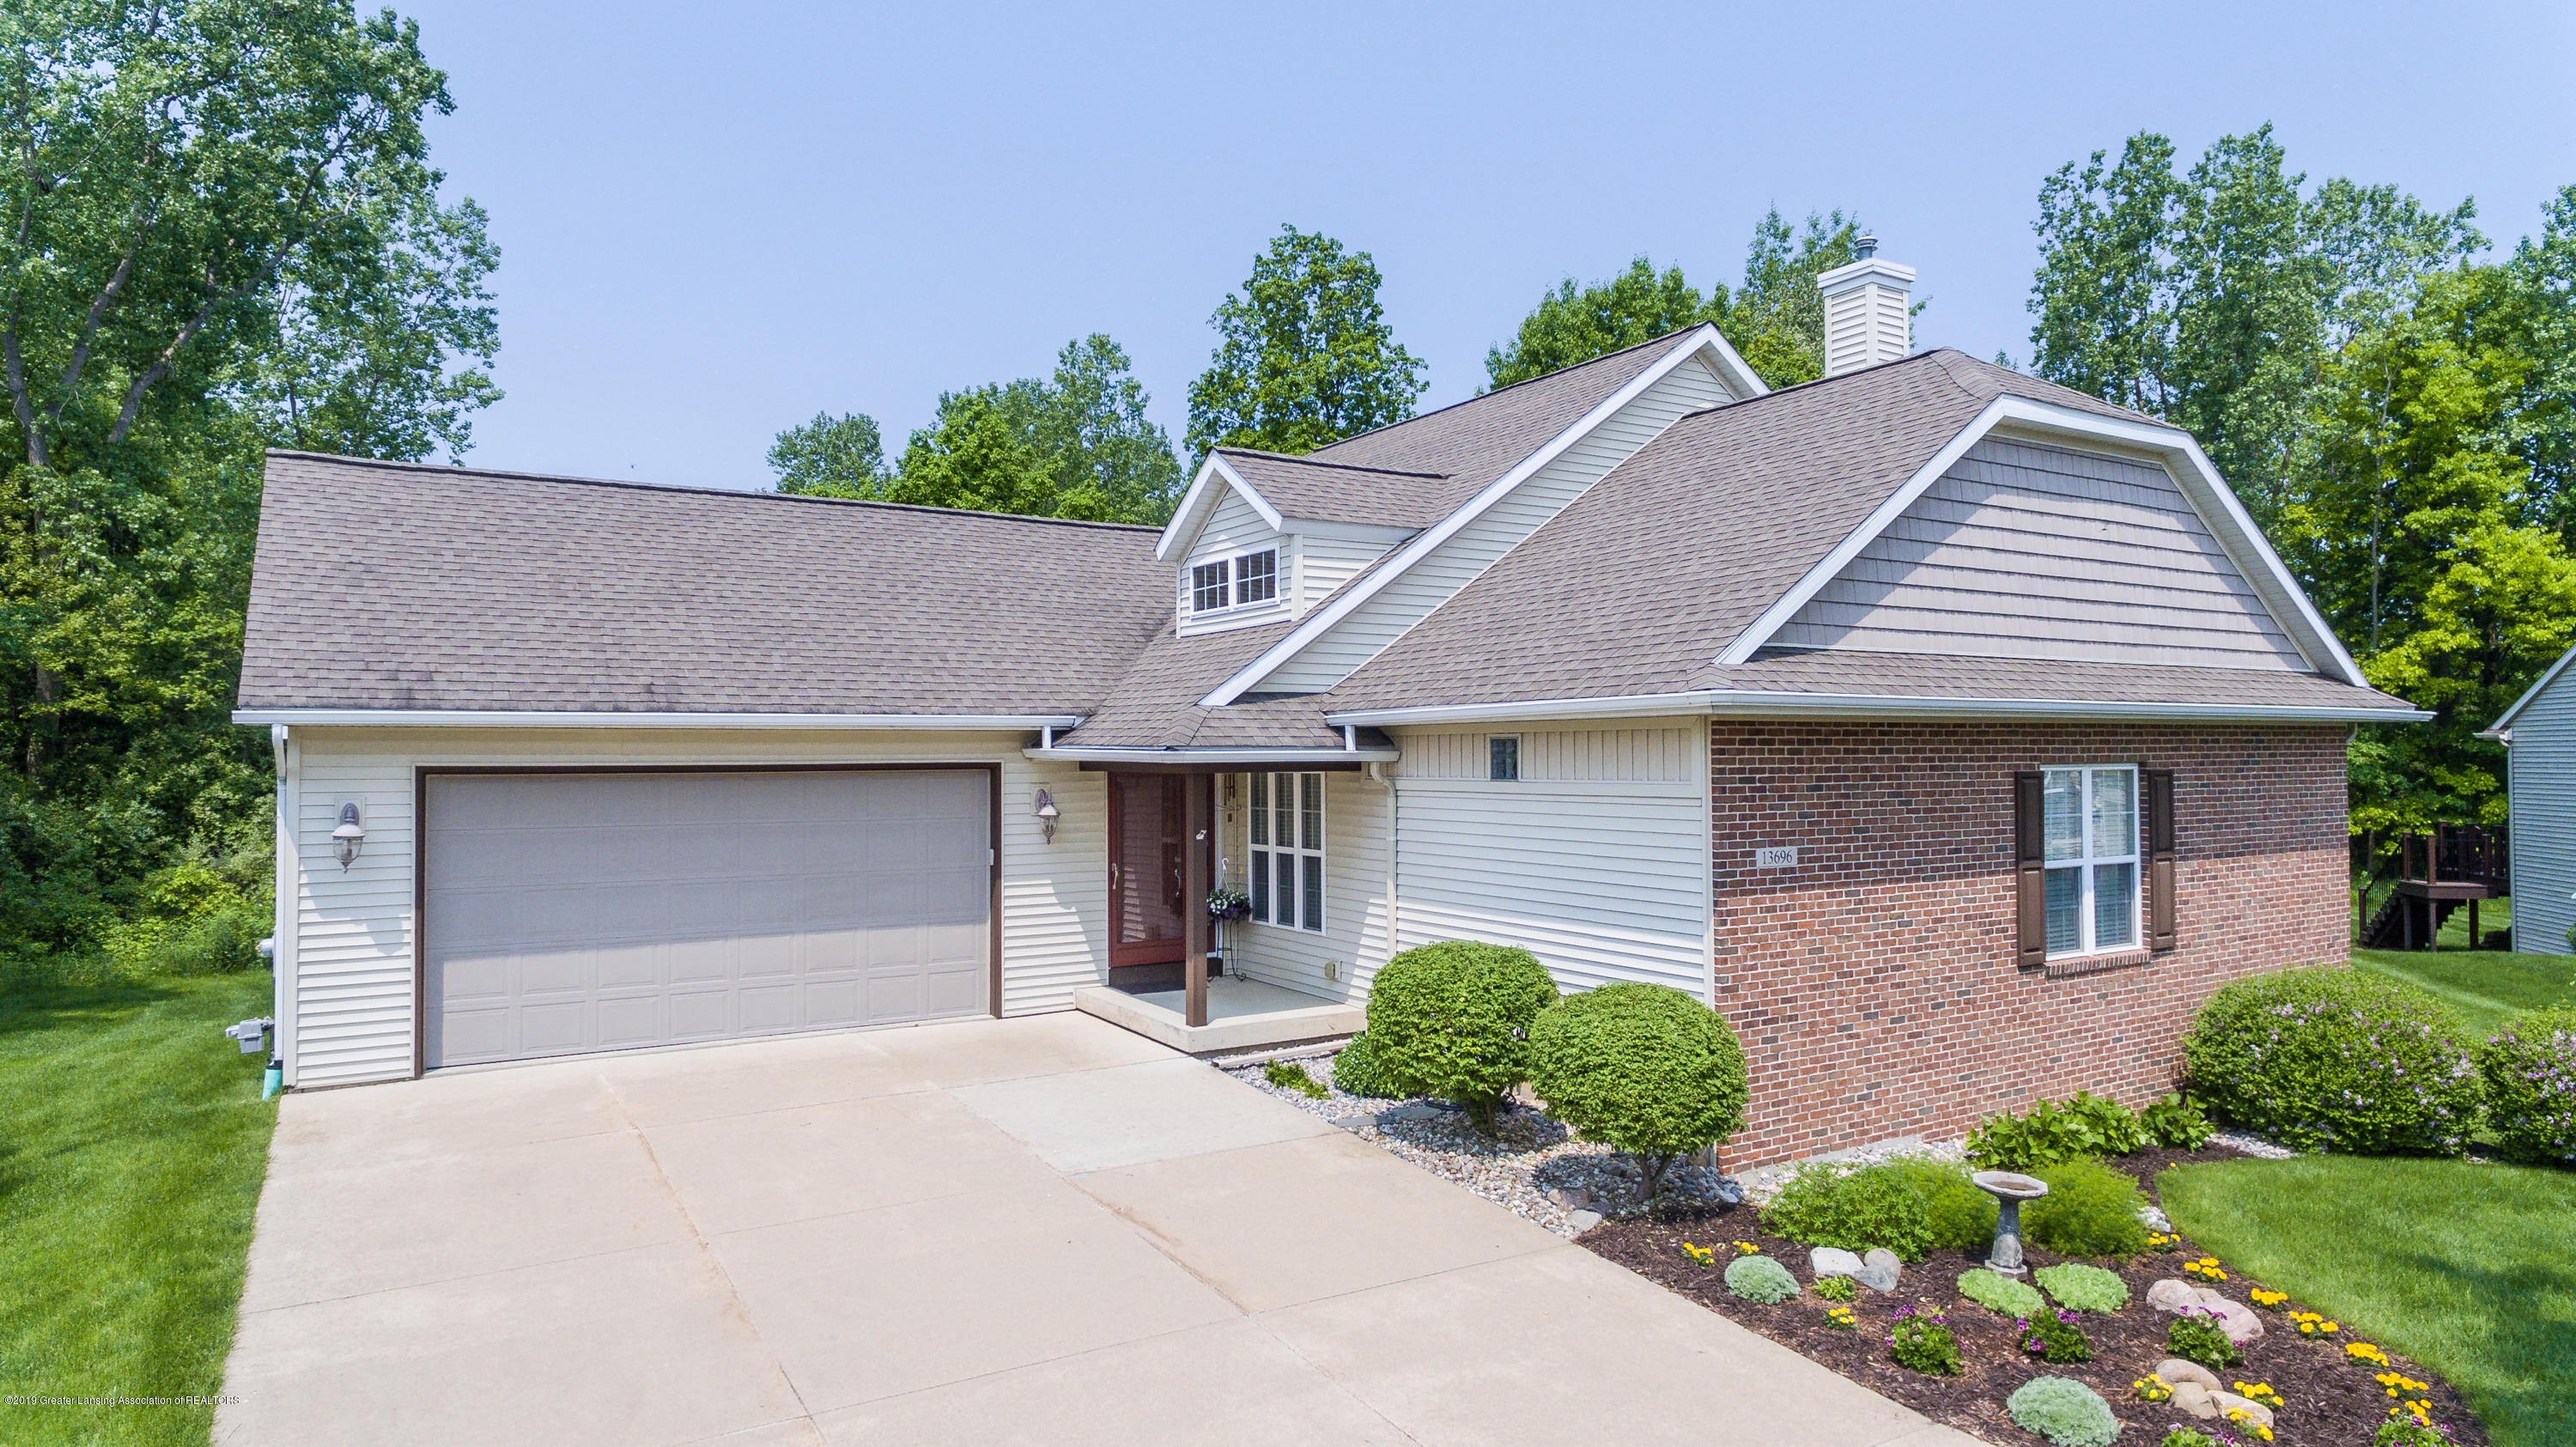 13696 Pearwood Dr - Front View - 1